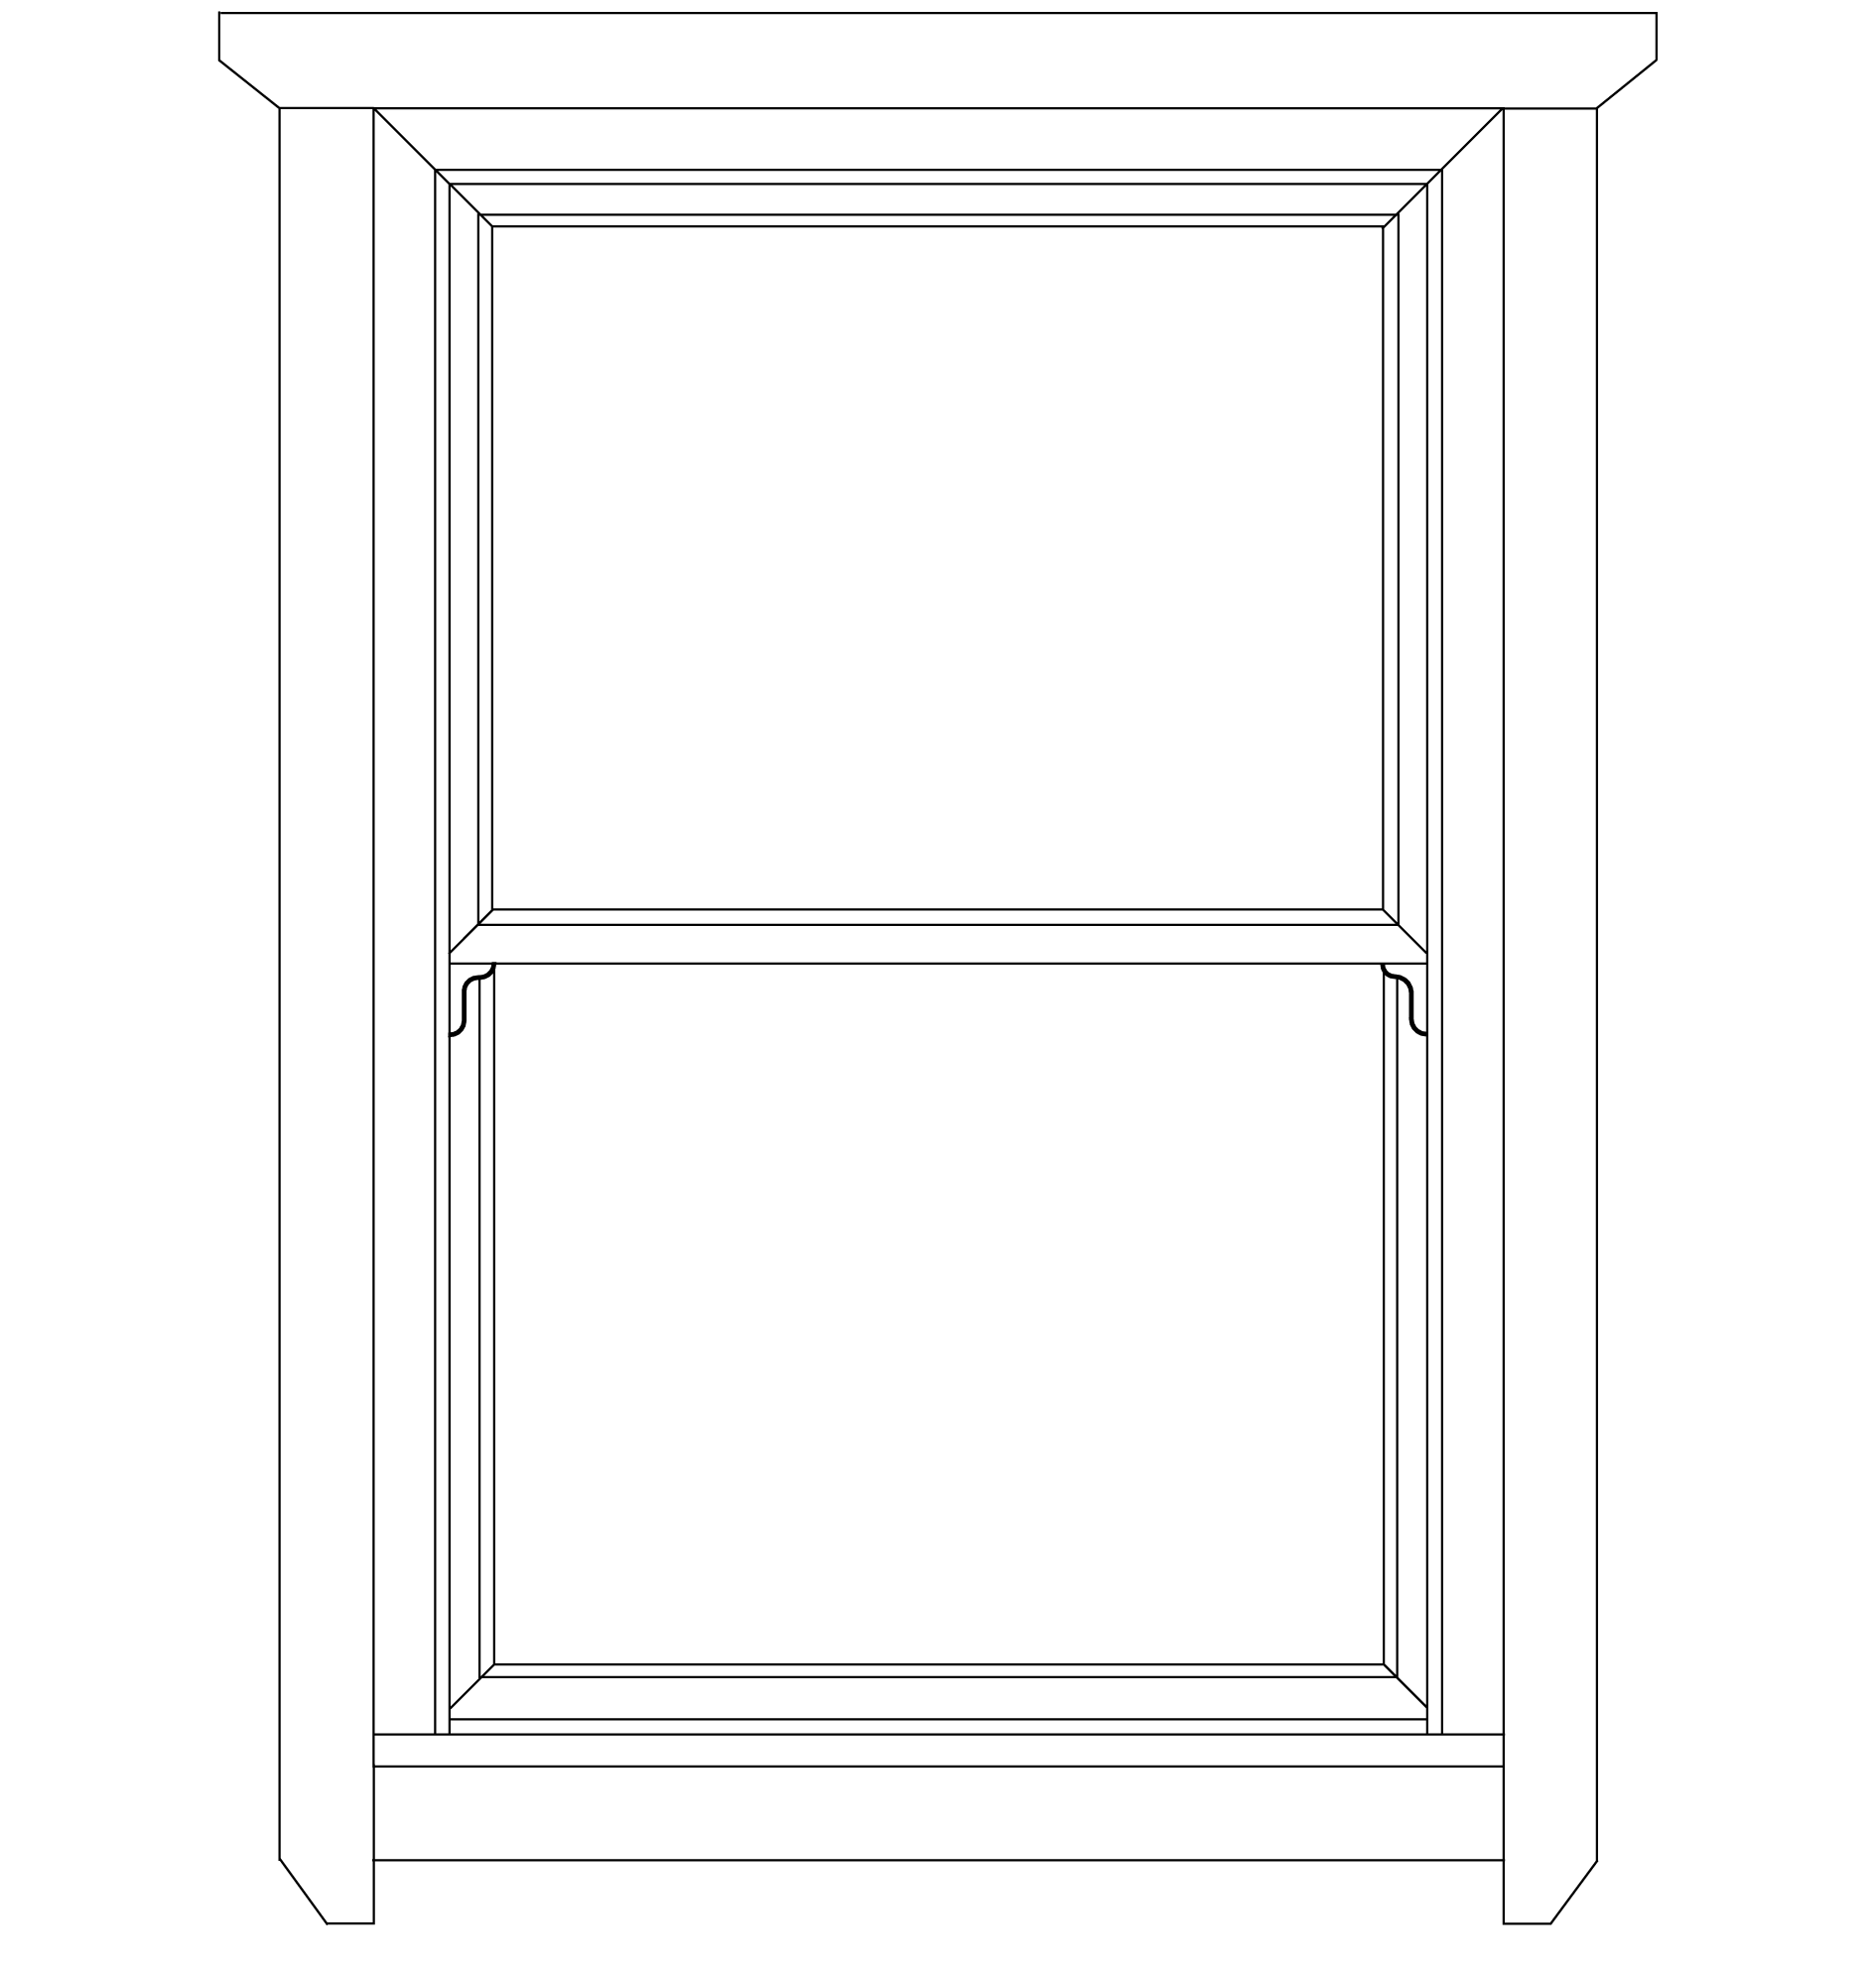 SRML sash window